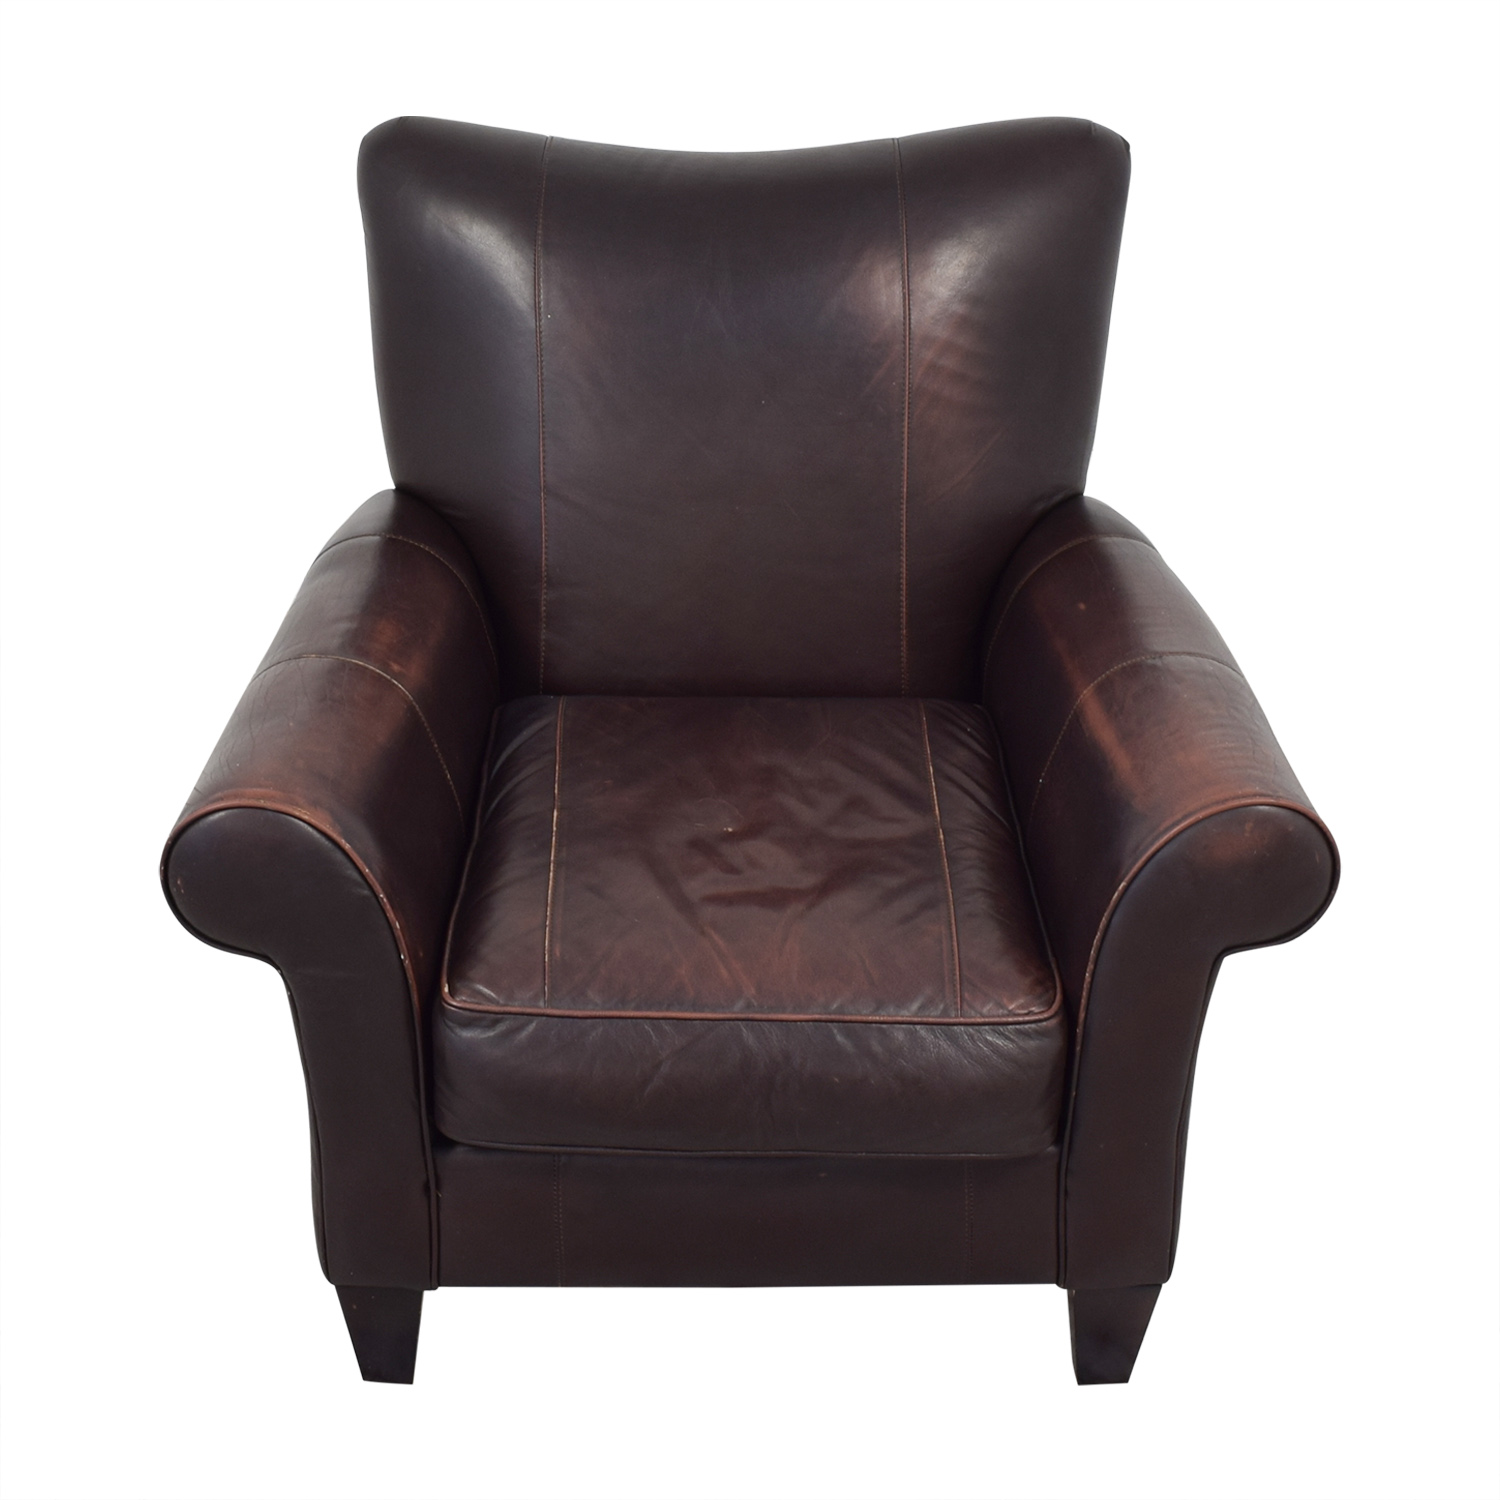 Bauhaus Furniture Leather Chair sale